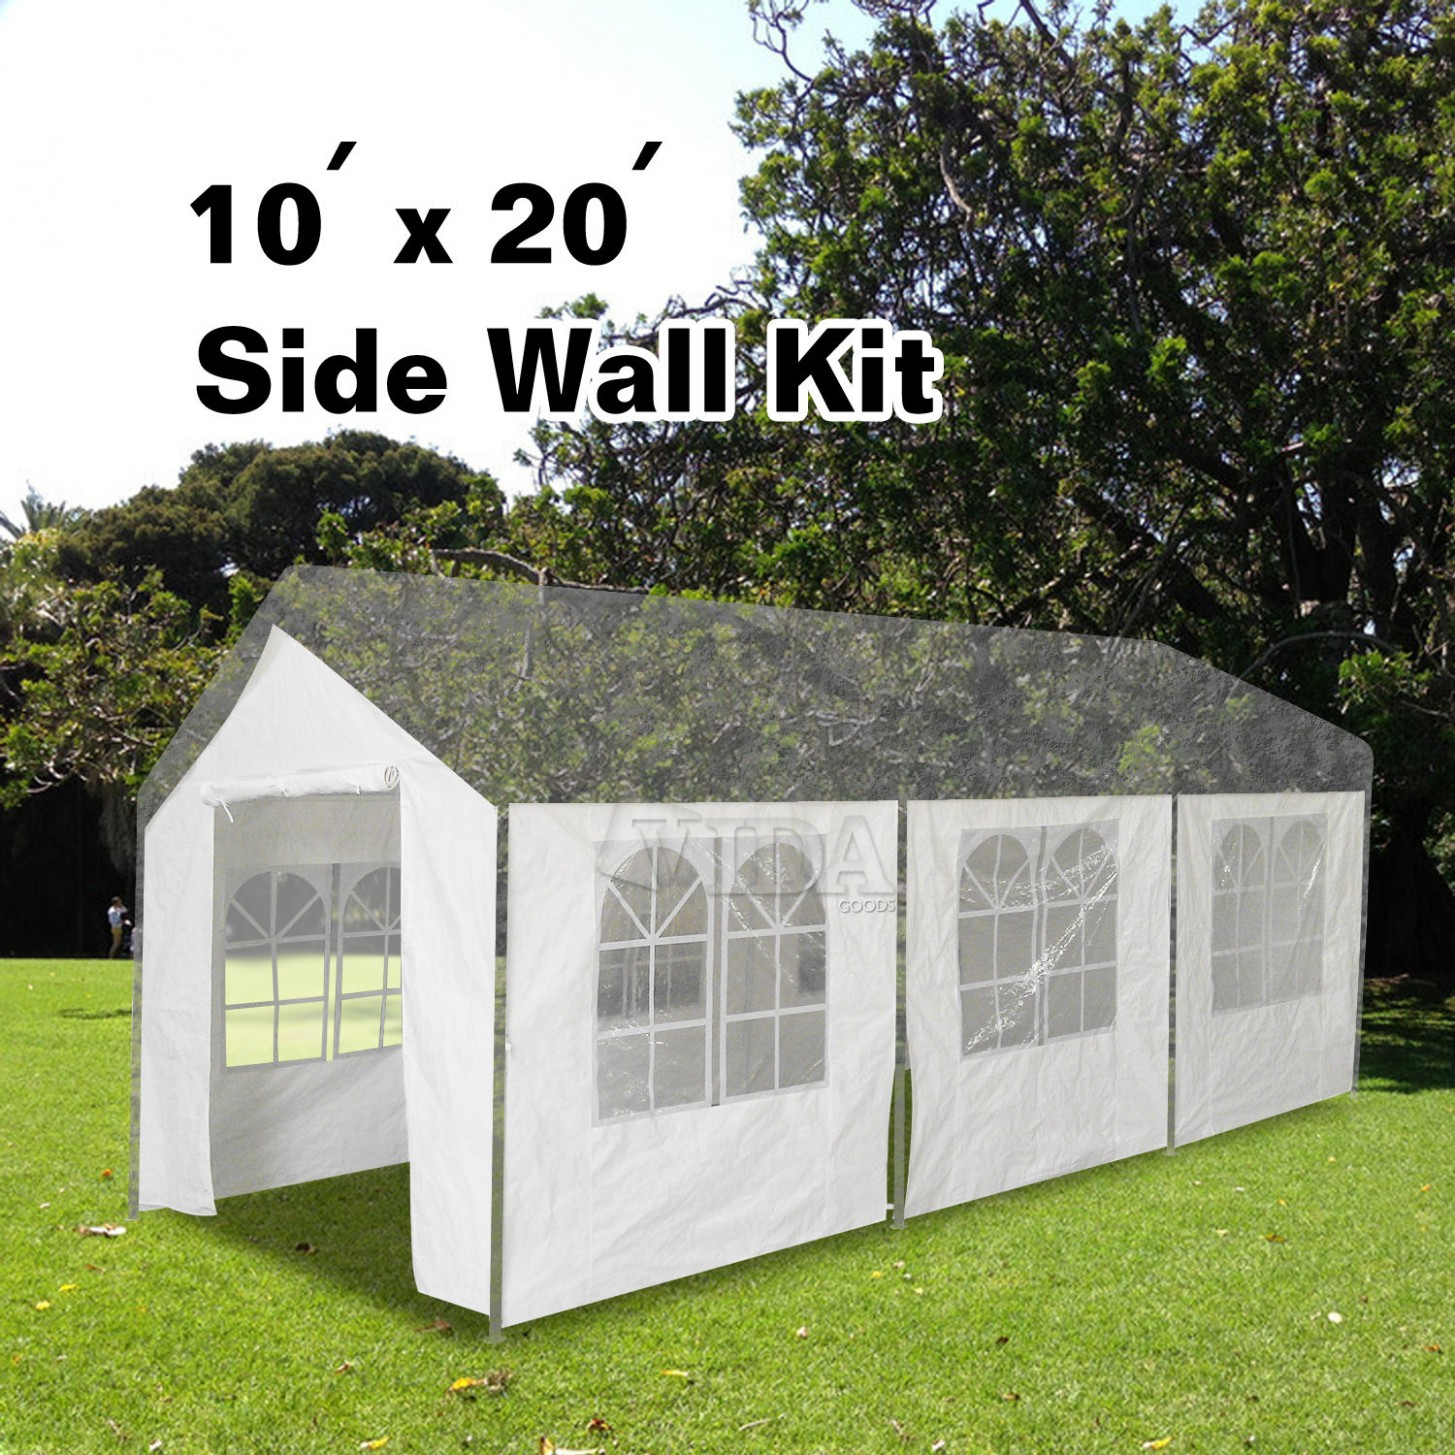 Ten Carport Shelter Kits That Had Gone Way Too Far   carport shelter kits